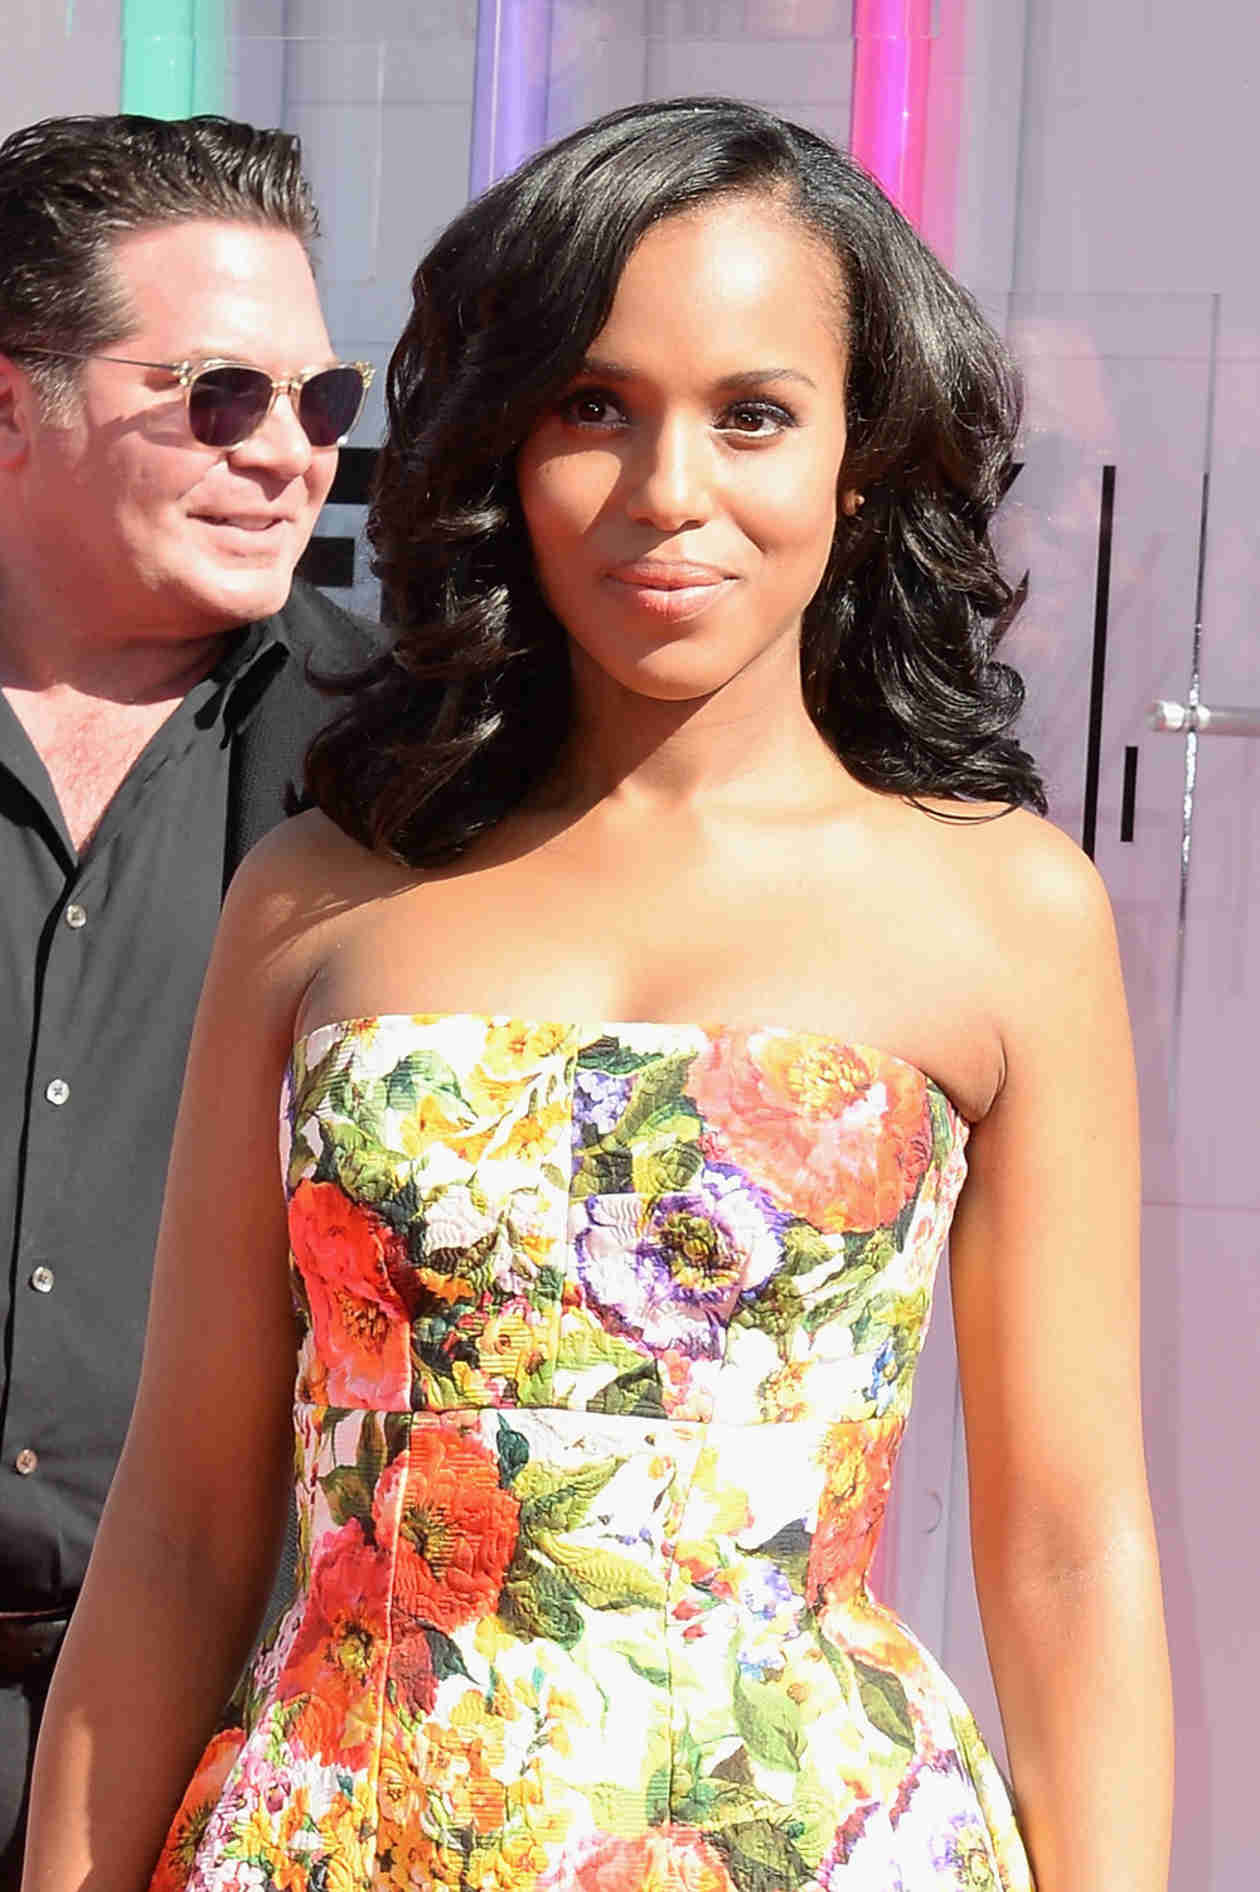 Kerry Washington's Scandal Co-Star Offers to Babysit Her Kid!